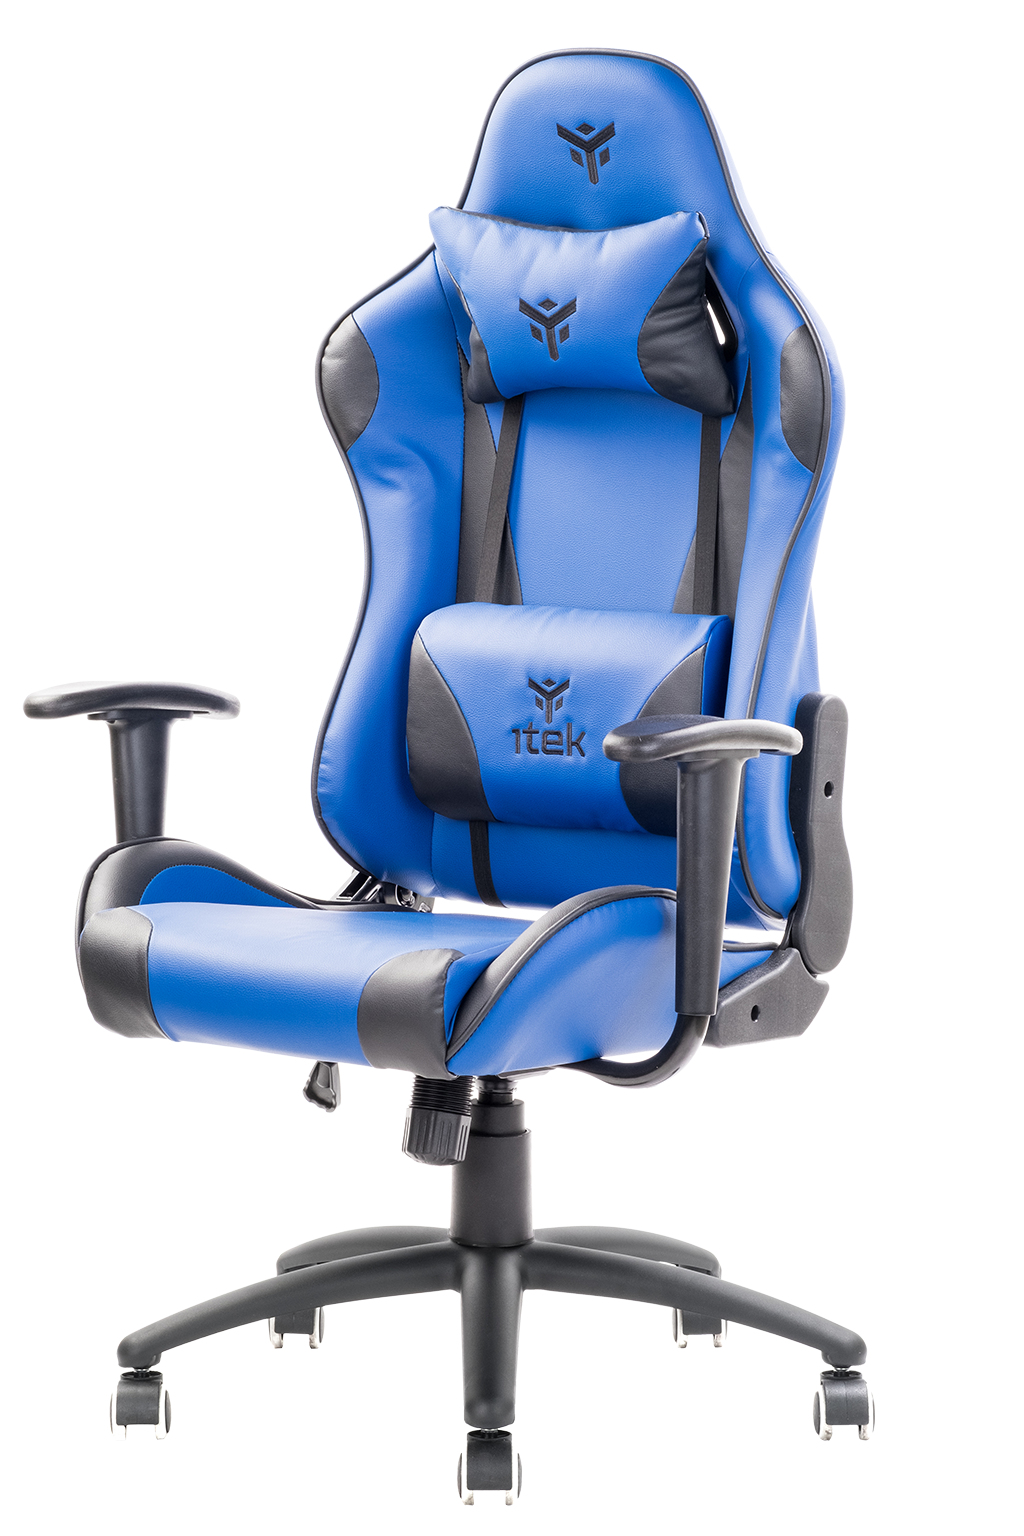 itek Gaming Chair PLAYCOM PM20 - PVC, Doppio Cuscino, Schienale Reclinabile, Blu Nero